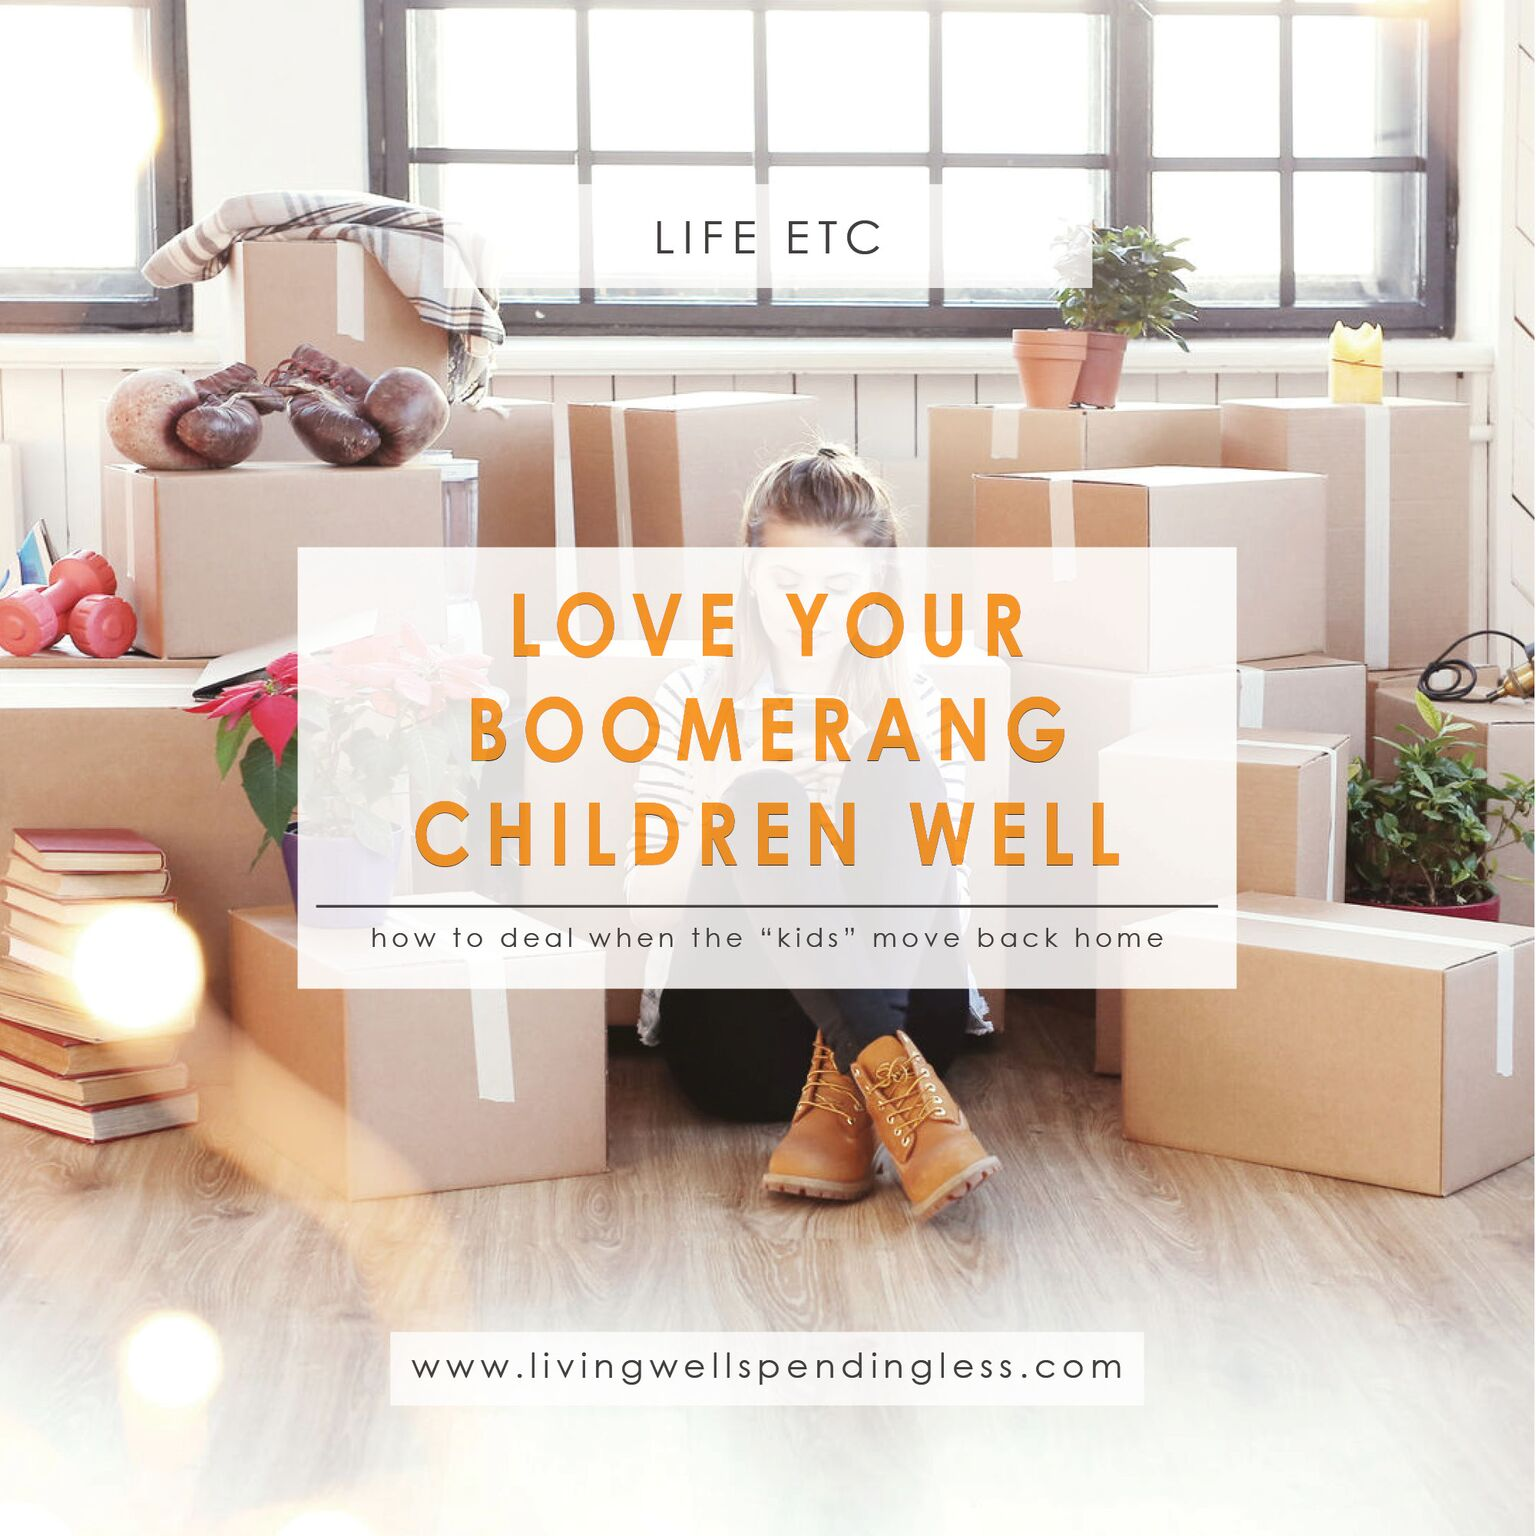 Love Your Boomerang Children Well⎢How to Deal When Your Kids Move Back Home⎢Parenting Adults⎢Parenting⎢Empty Nest⎢Millennial Children